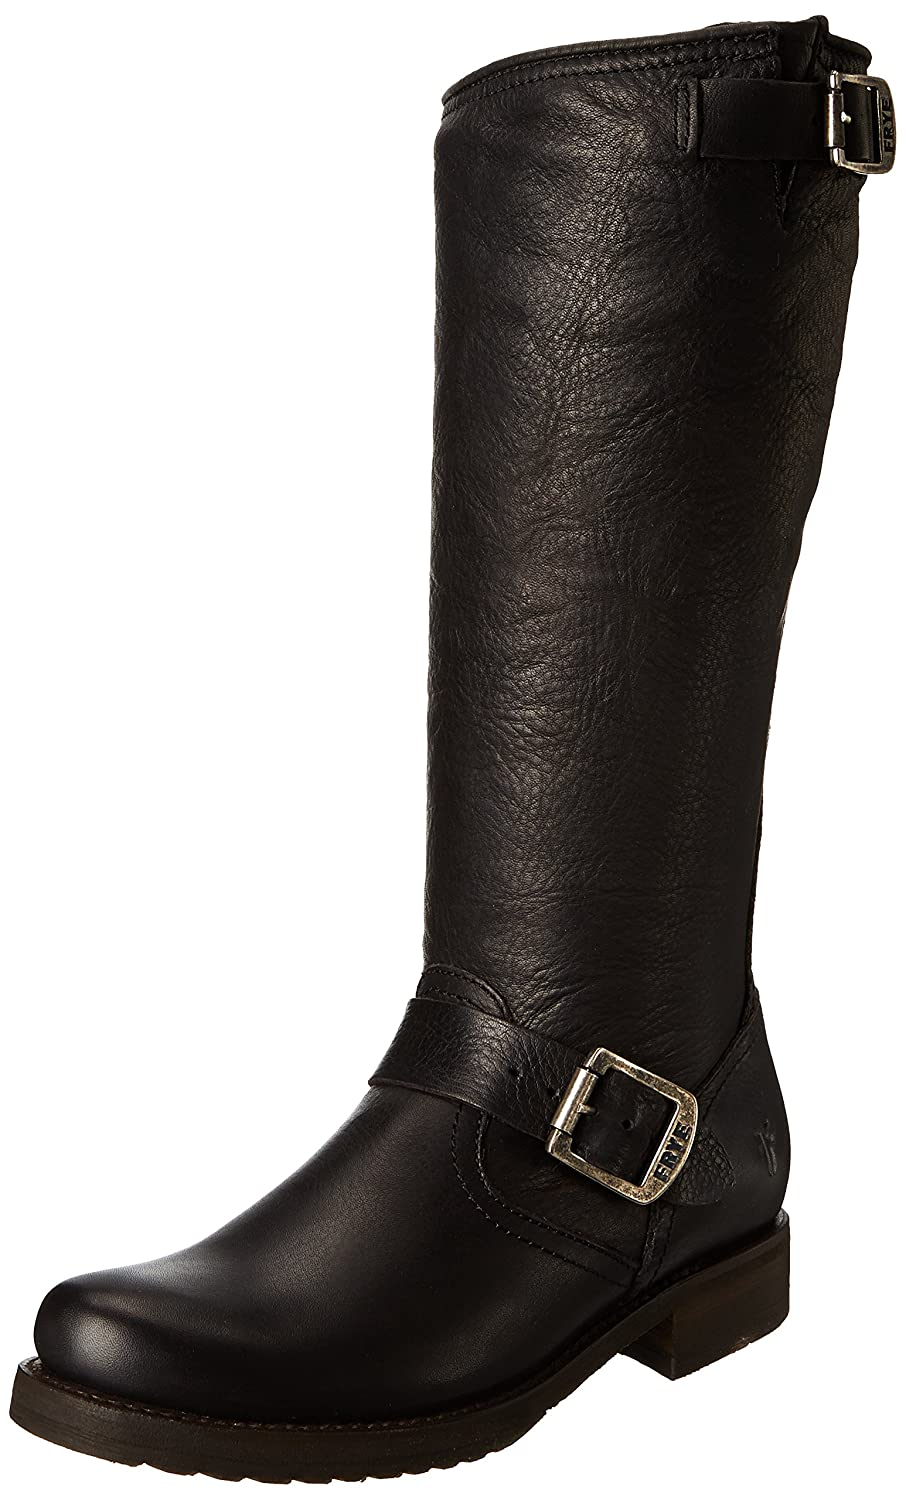 FRYE Women's Veronica Slouch Boot B008BULEP6 5.5 B(M) US|Black Soft Vintage Leather-76602